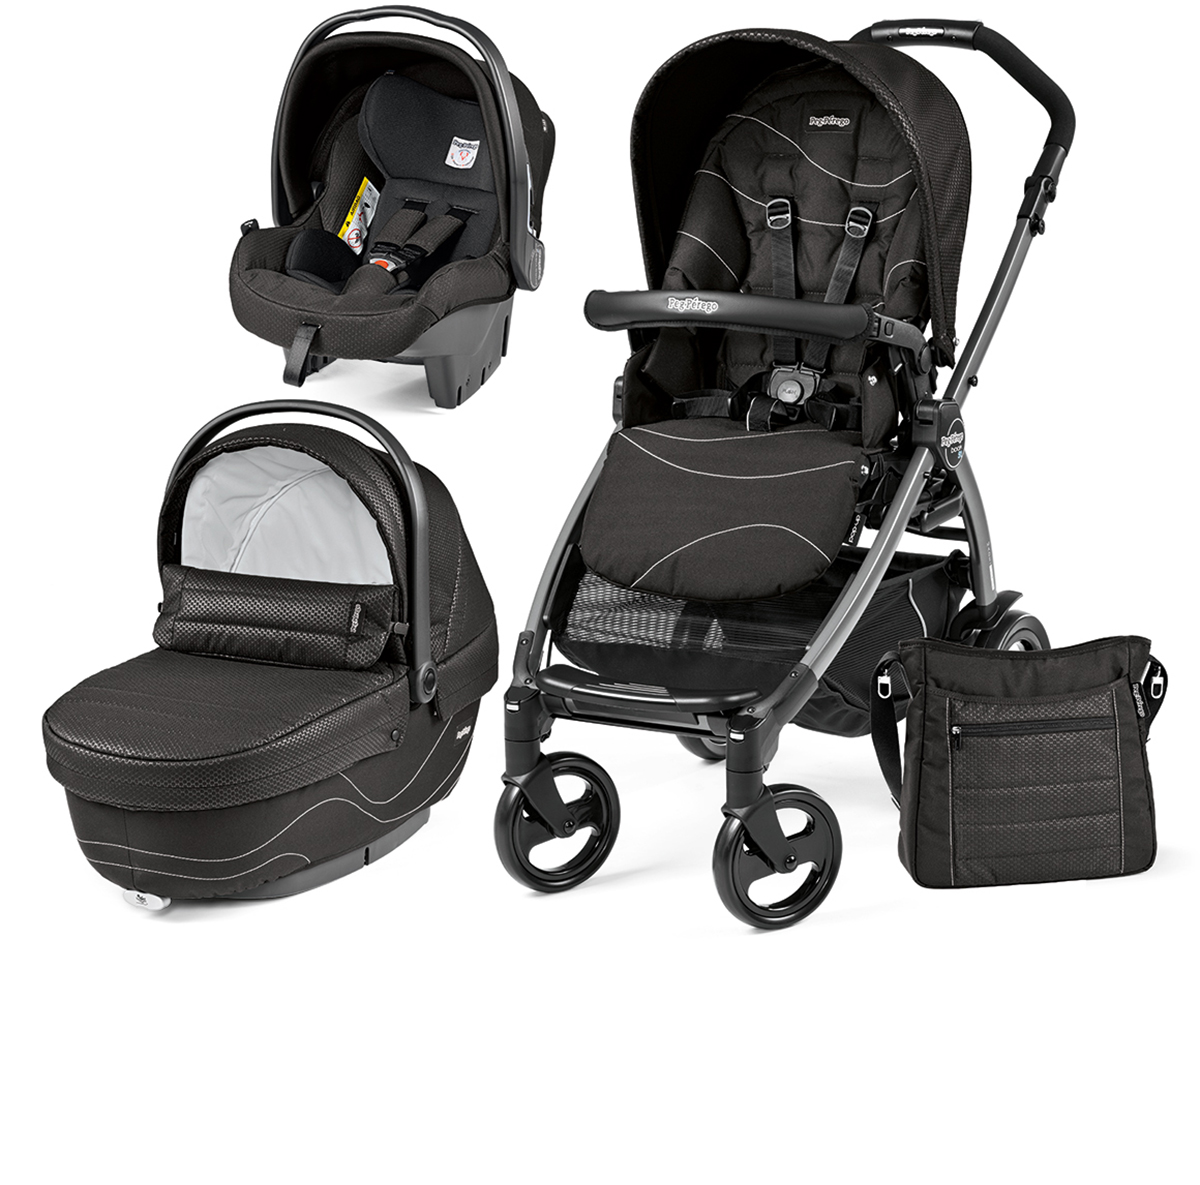 hr_2017_09_01_peg_perego_bloom_black.jpg